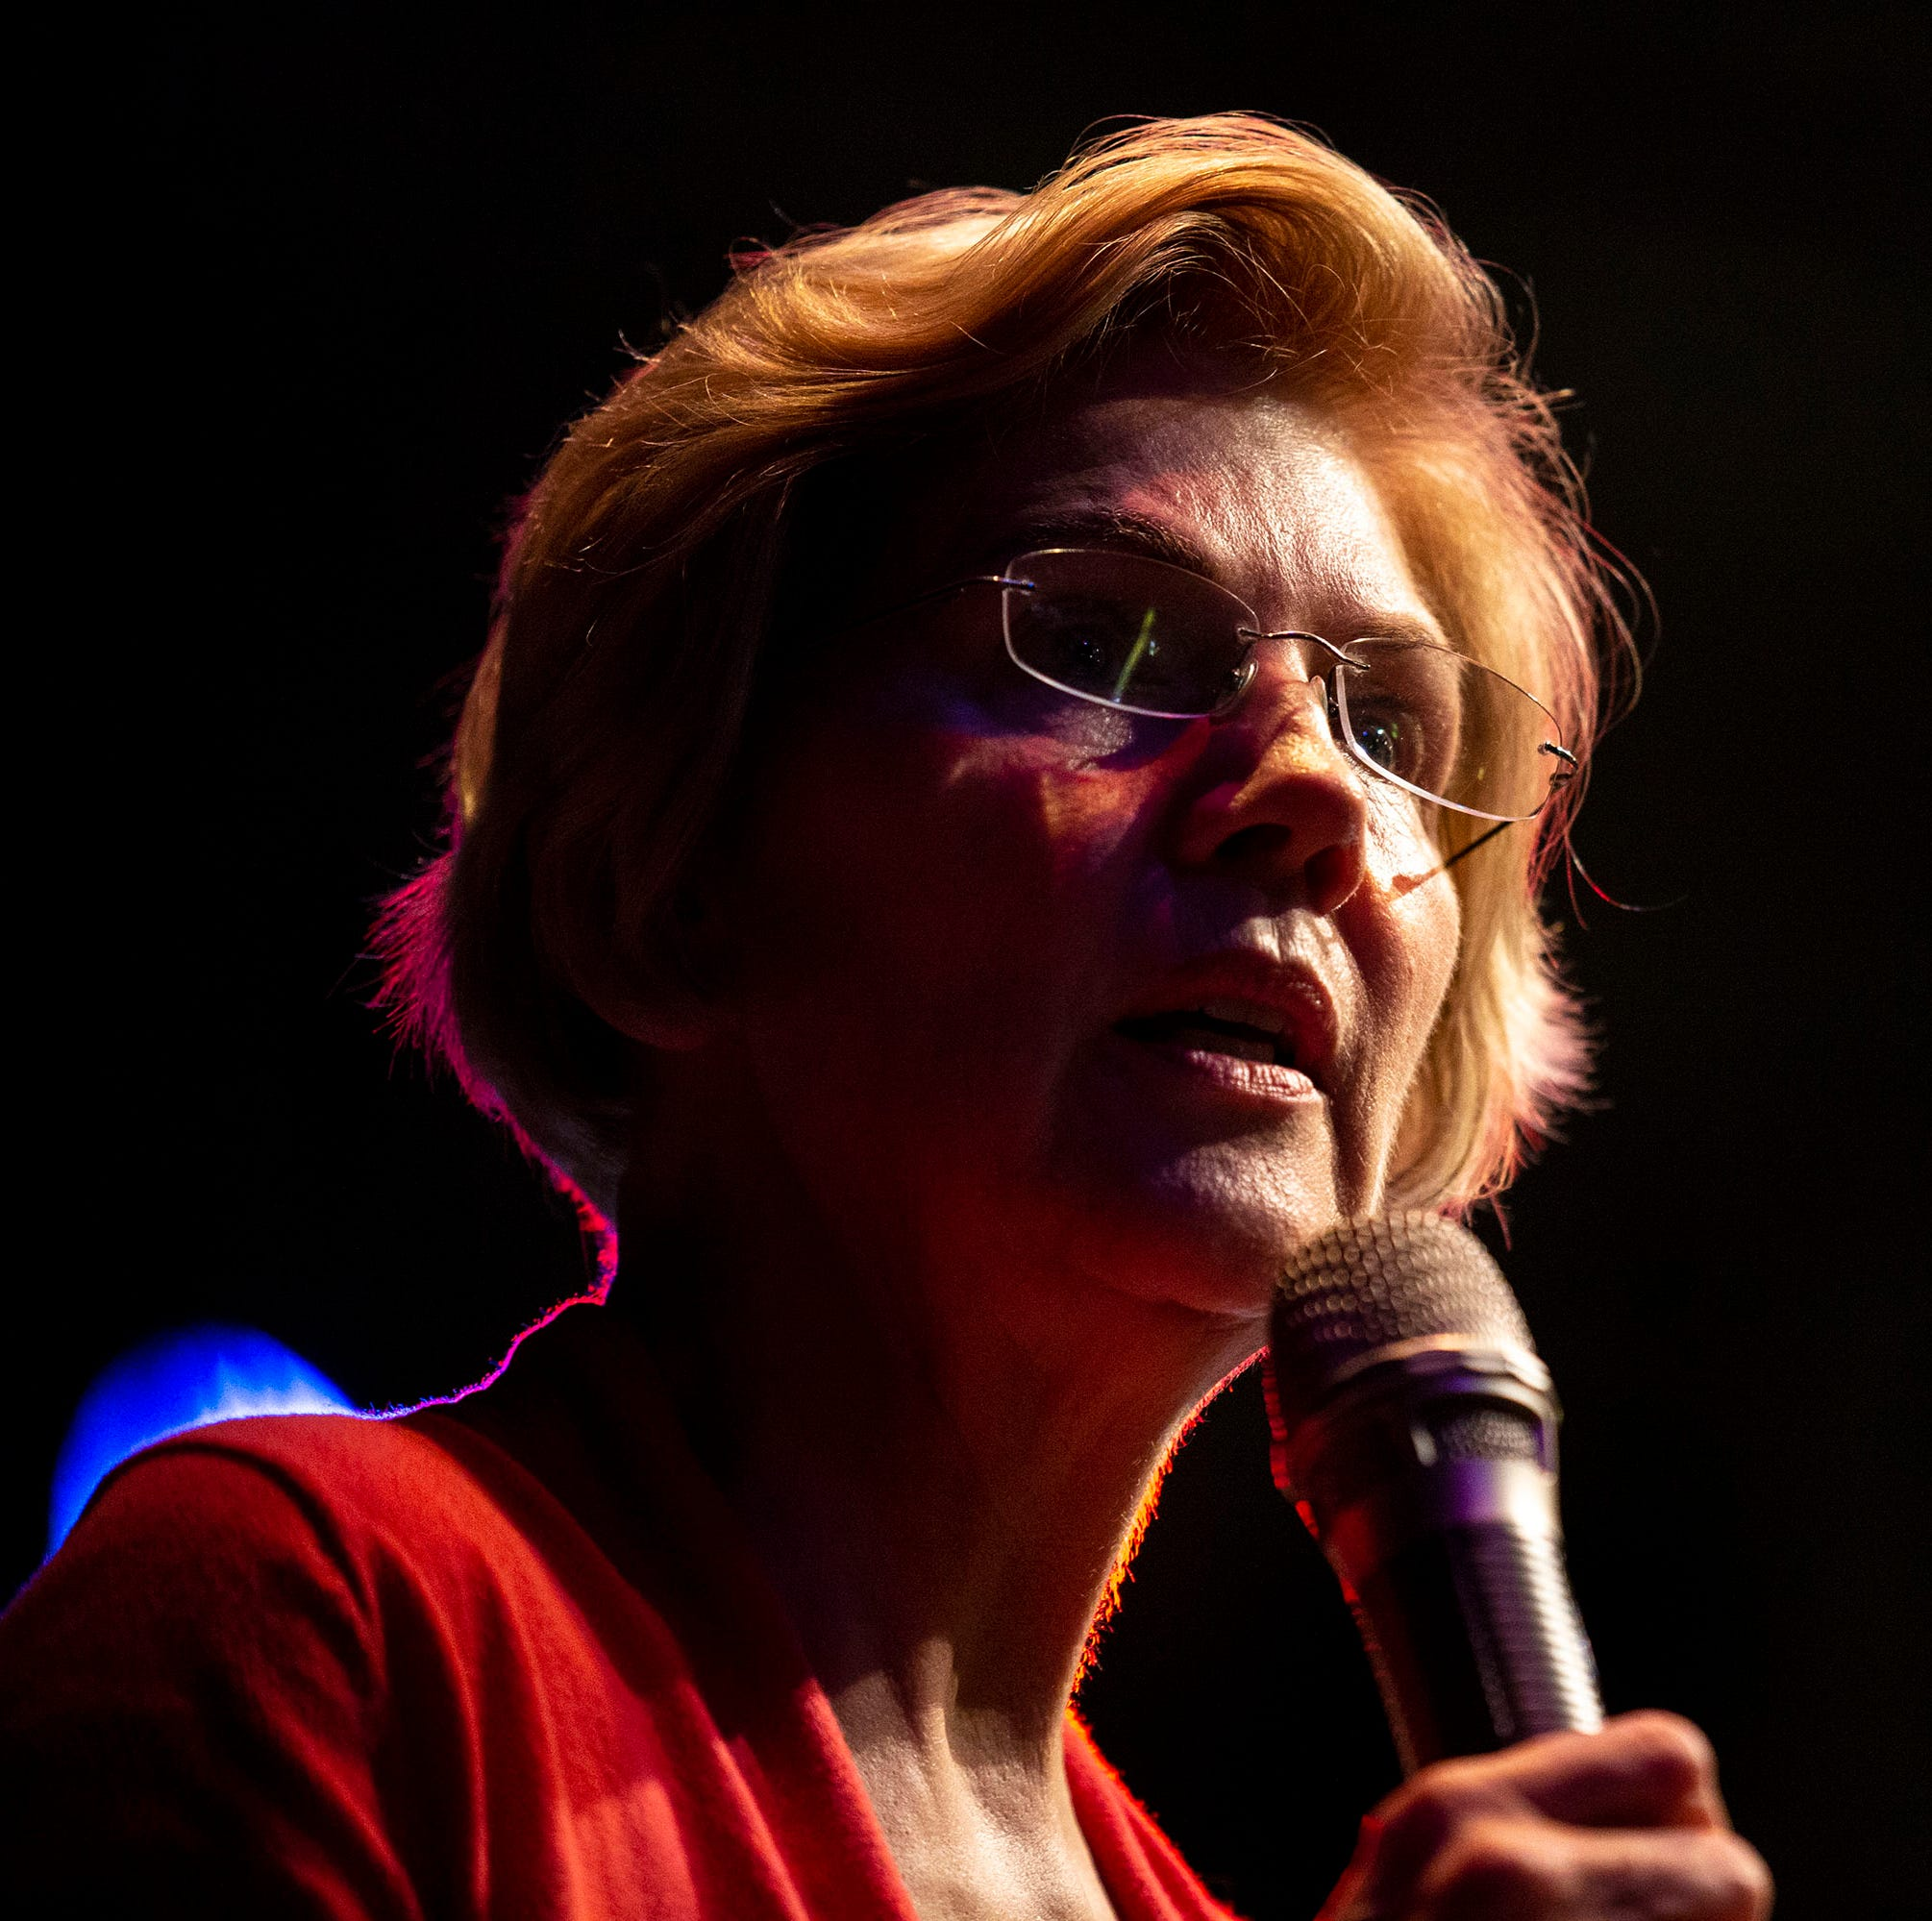 'The queen of policy': Warren builds campaign around detailed plans, but is that what Iowa caucusgoers want?